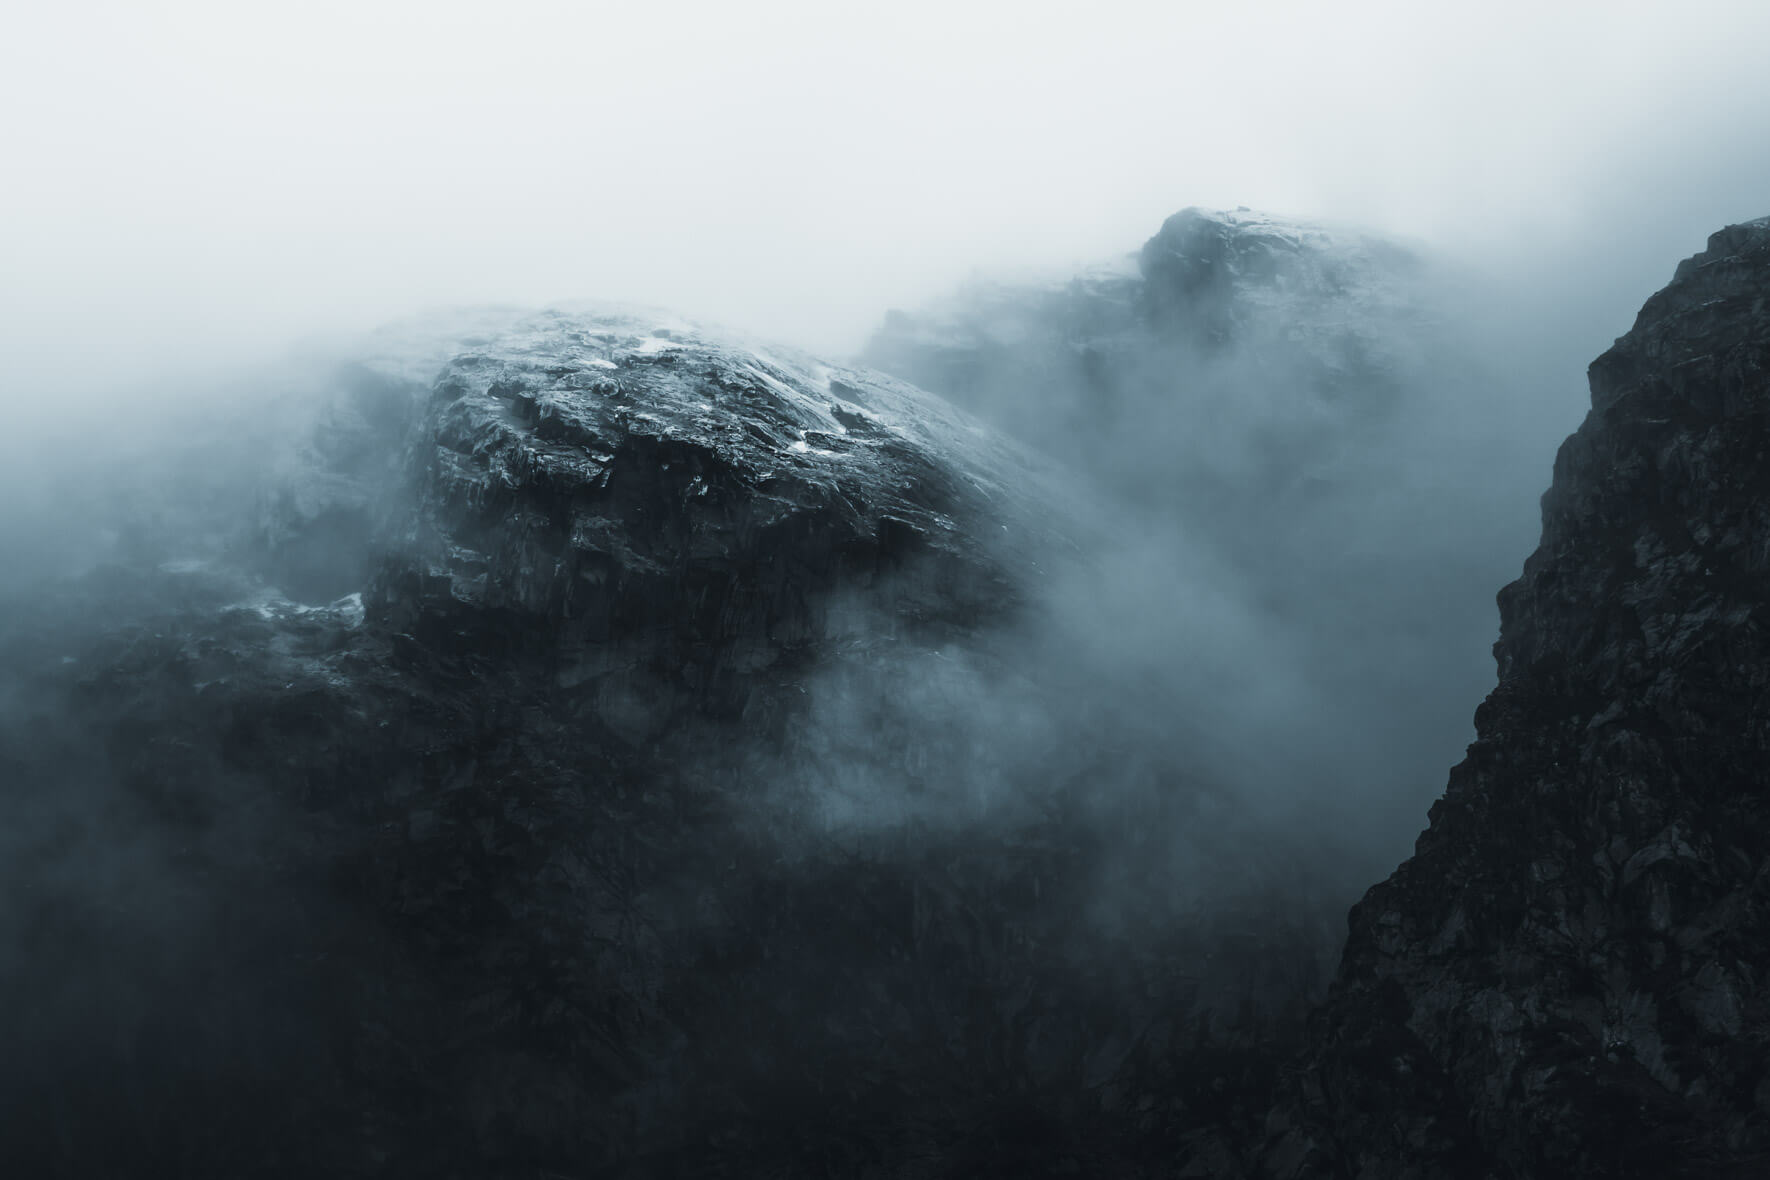 Dark and moody landscape photography by Northlandscapes - Jan Erik Waider